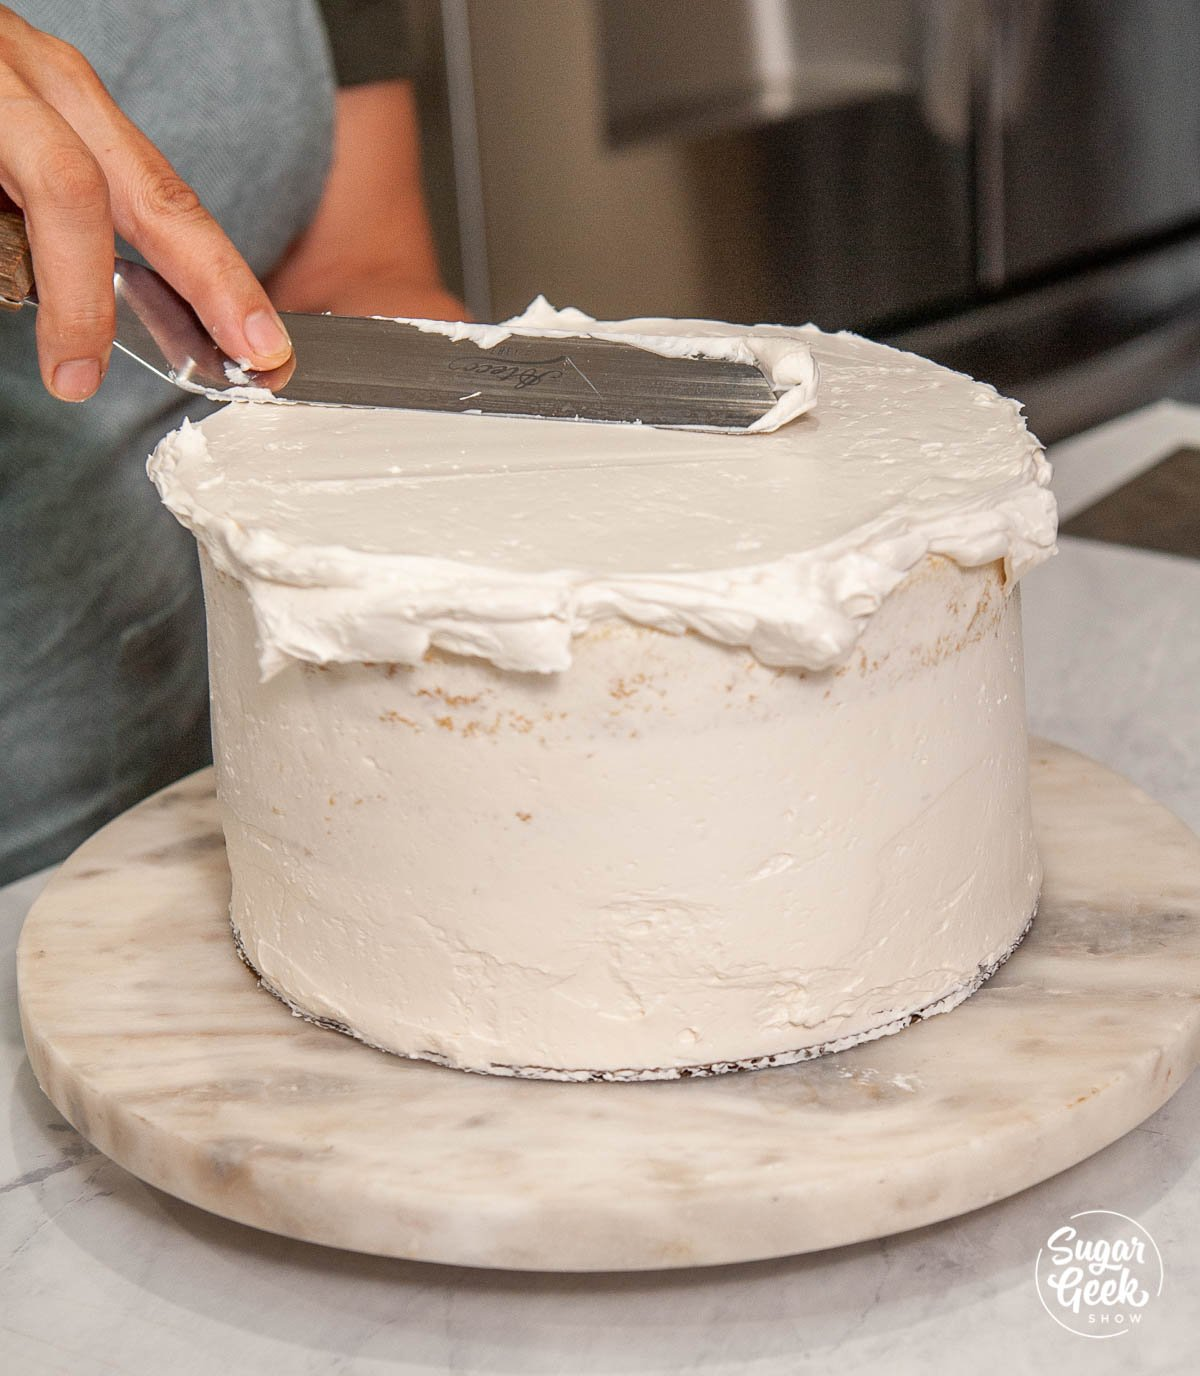 adding the final coat of buttercream